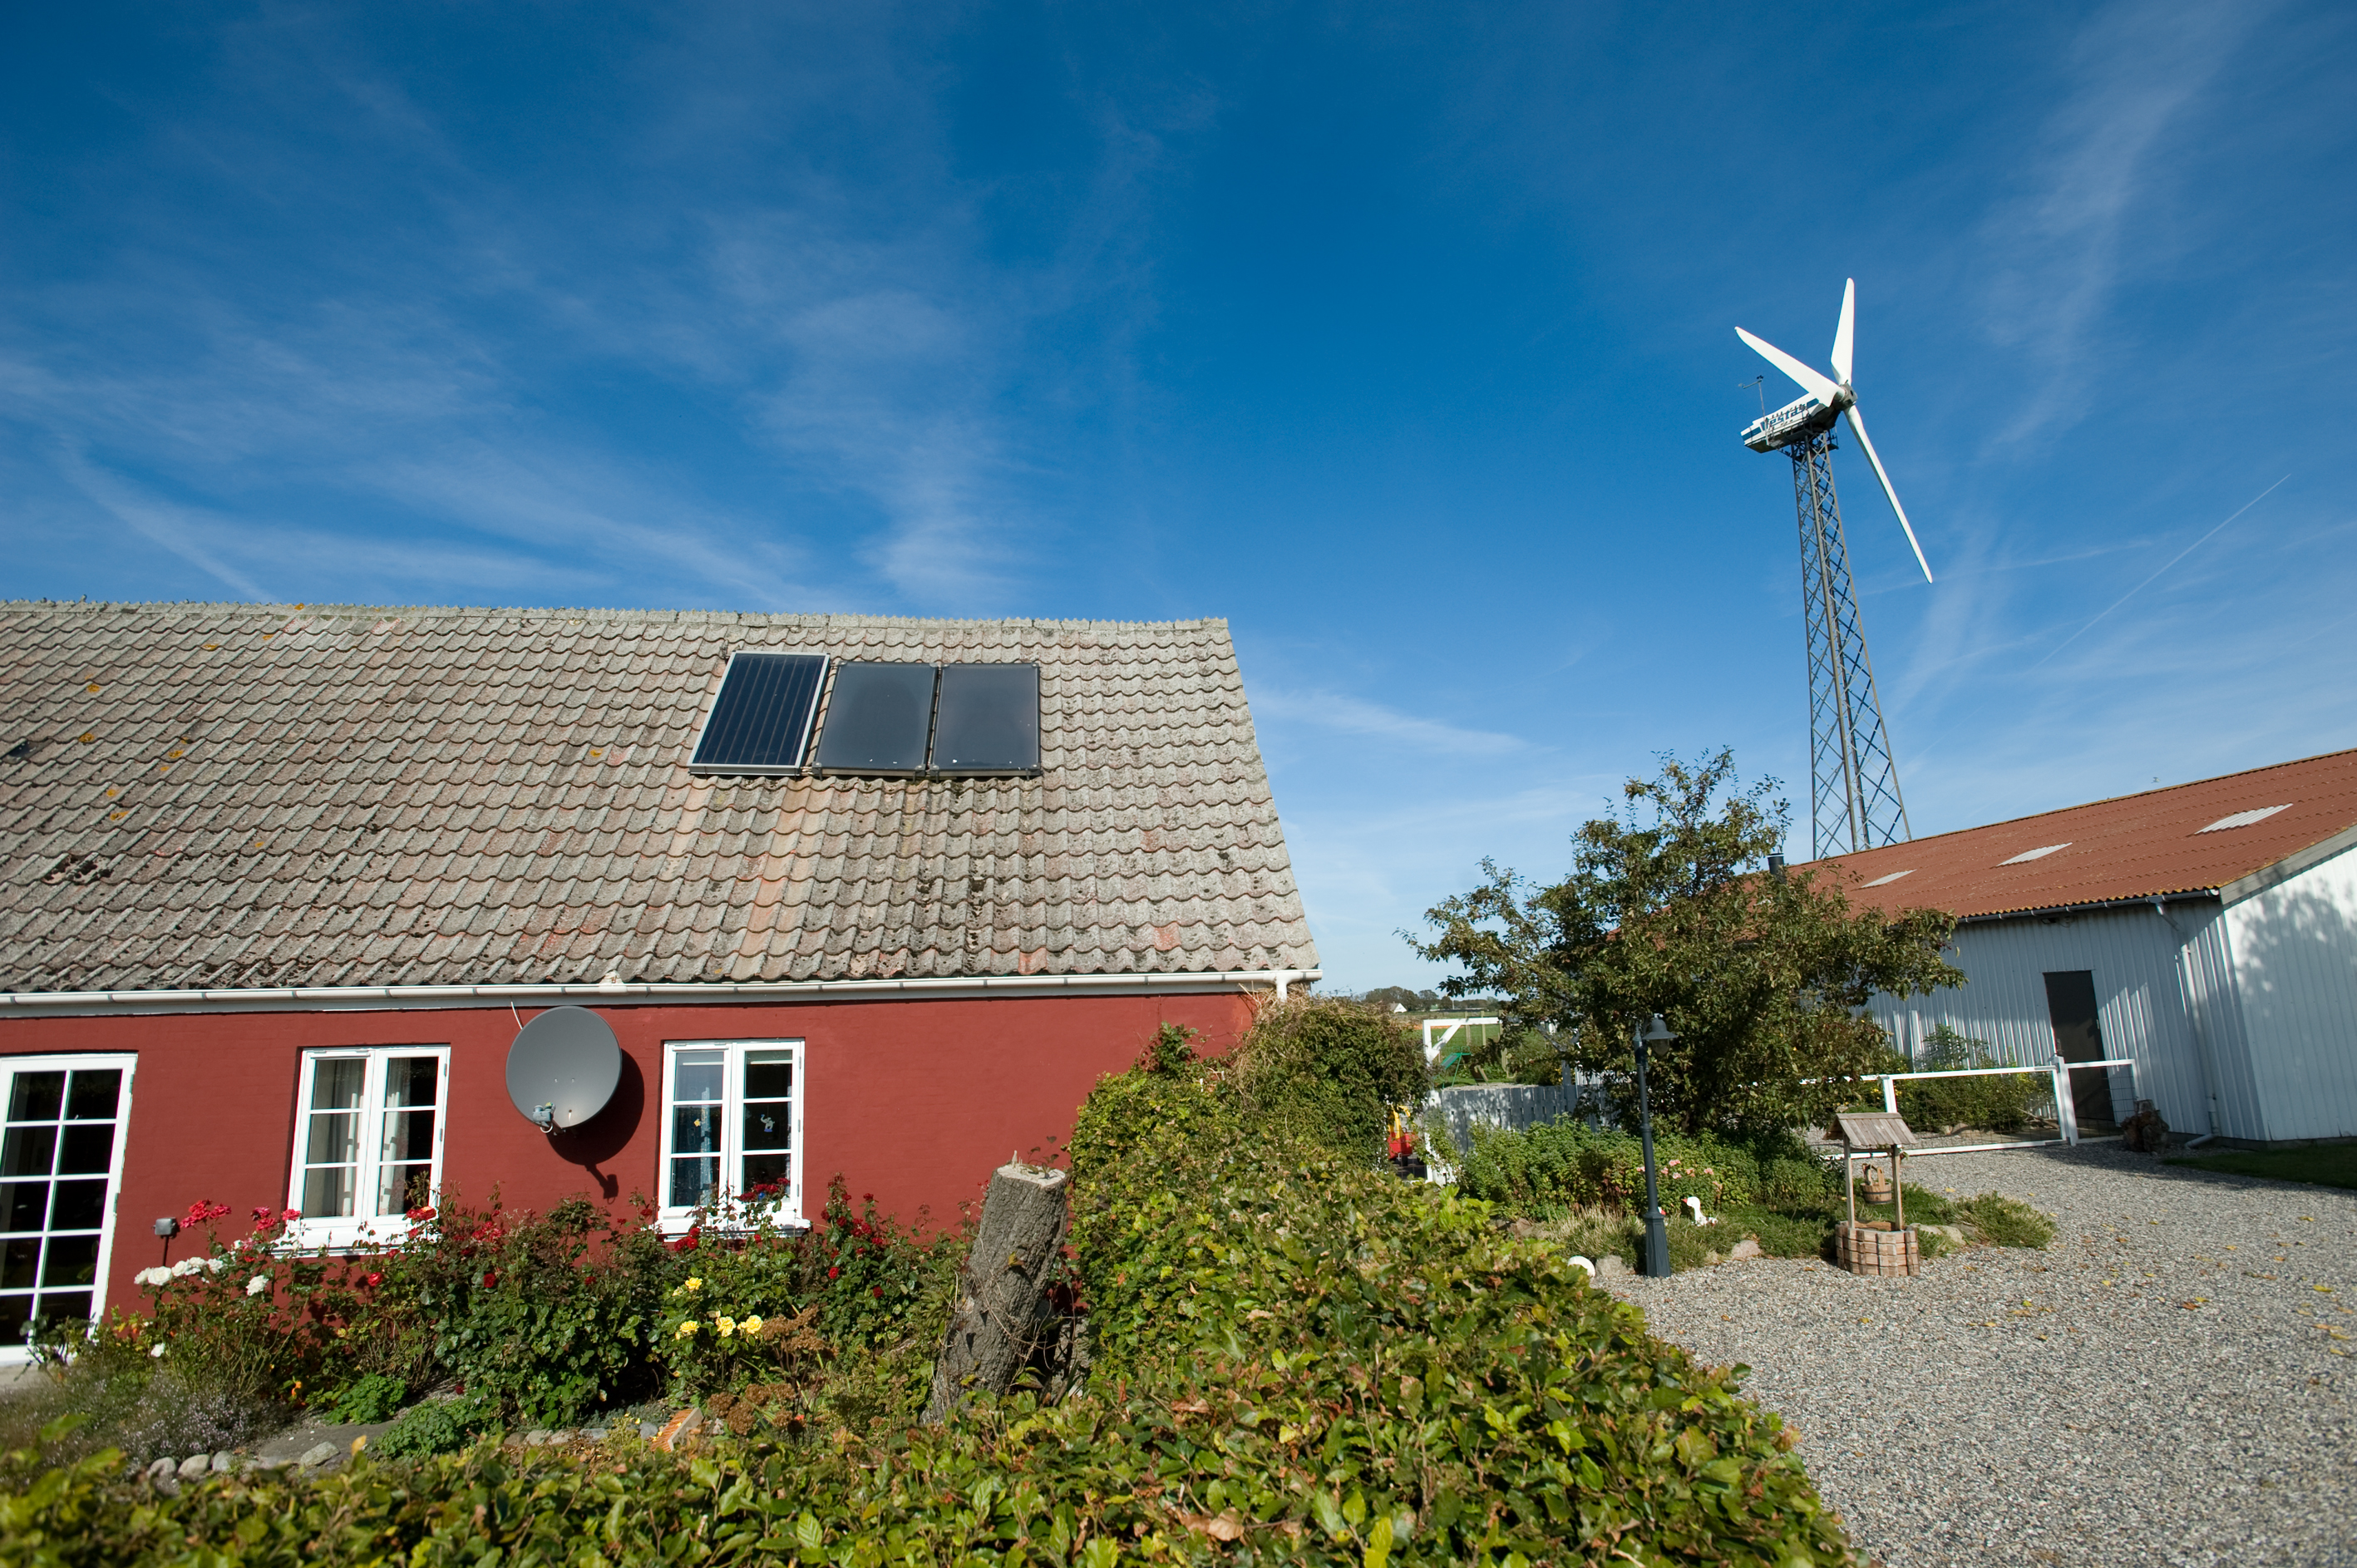 The island of Samsoe: an example of a self-sufficient community in renewable energy